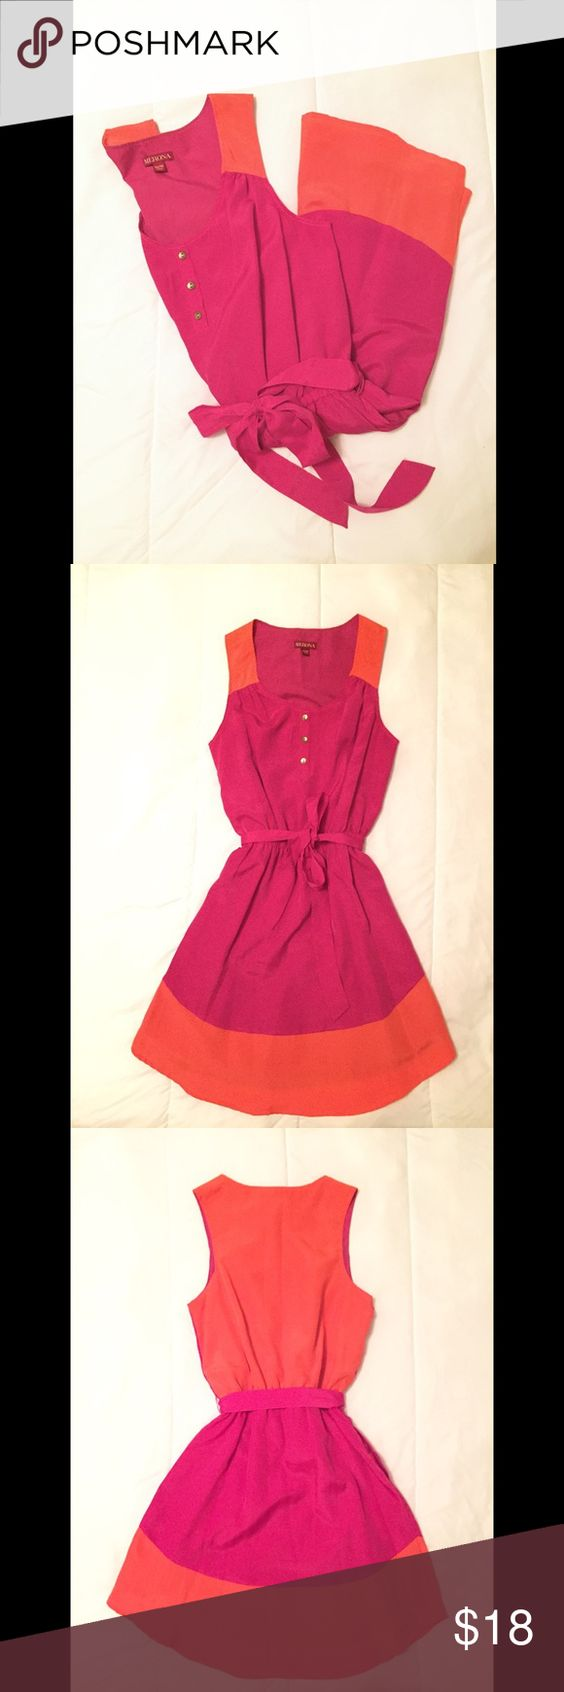 Merona Color Block Dress Vibrant pink and orange highlight this dress. It fits like a comfortable shirt dress with a tie waist! The selling feature is sure to be the incorporated POCKETS! Perfect for a day at the office of running errands. FIT: true to size. Leave any questions or comments below! Thanks! -MC shop ✌🏼️ Merona Dresses